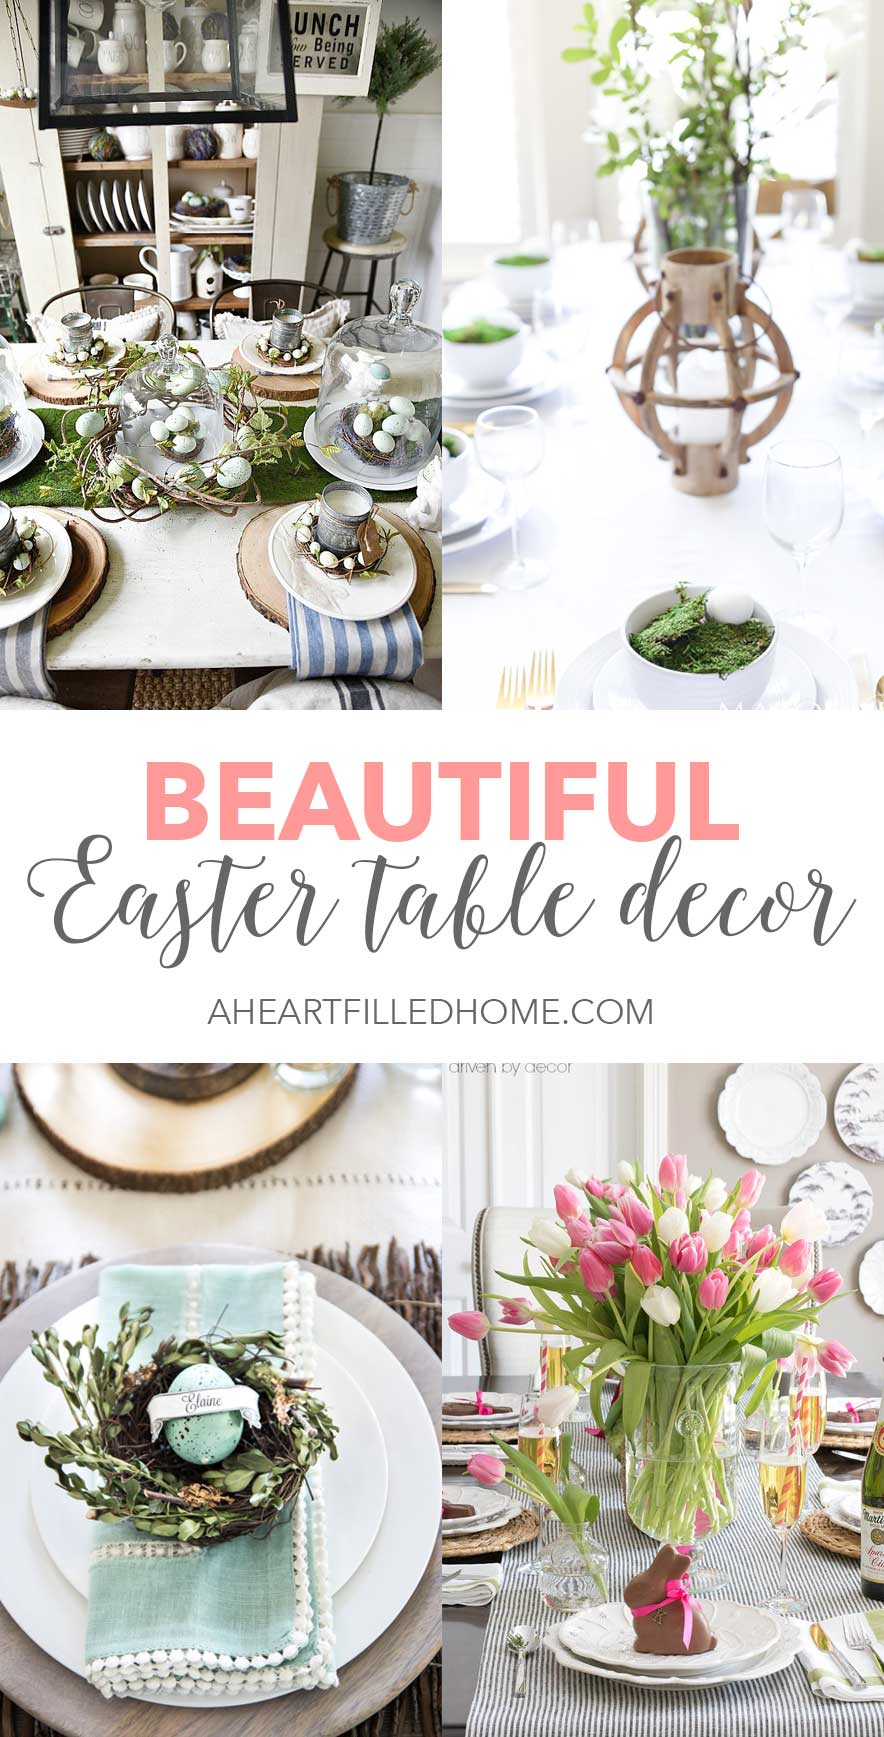 Easter Table Decor Ideas - Perfect for Easter!